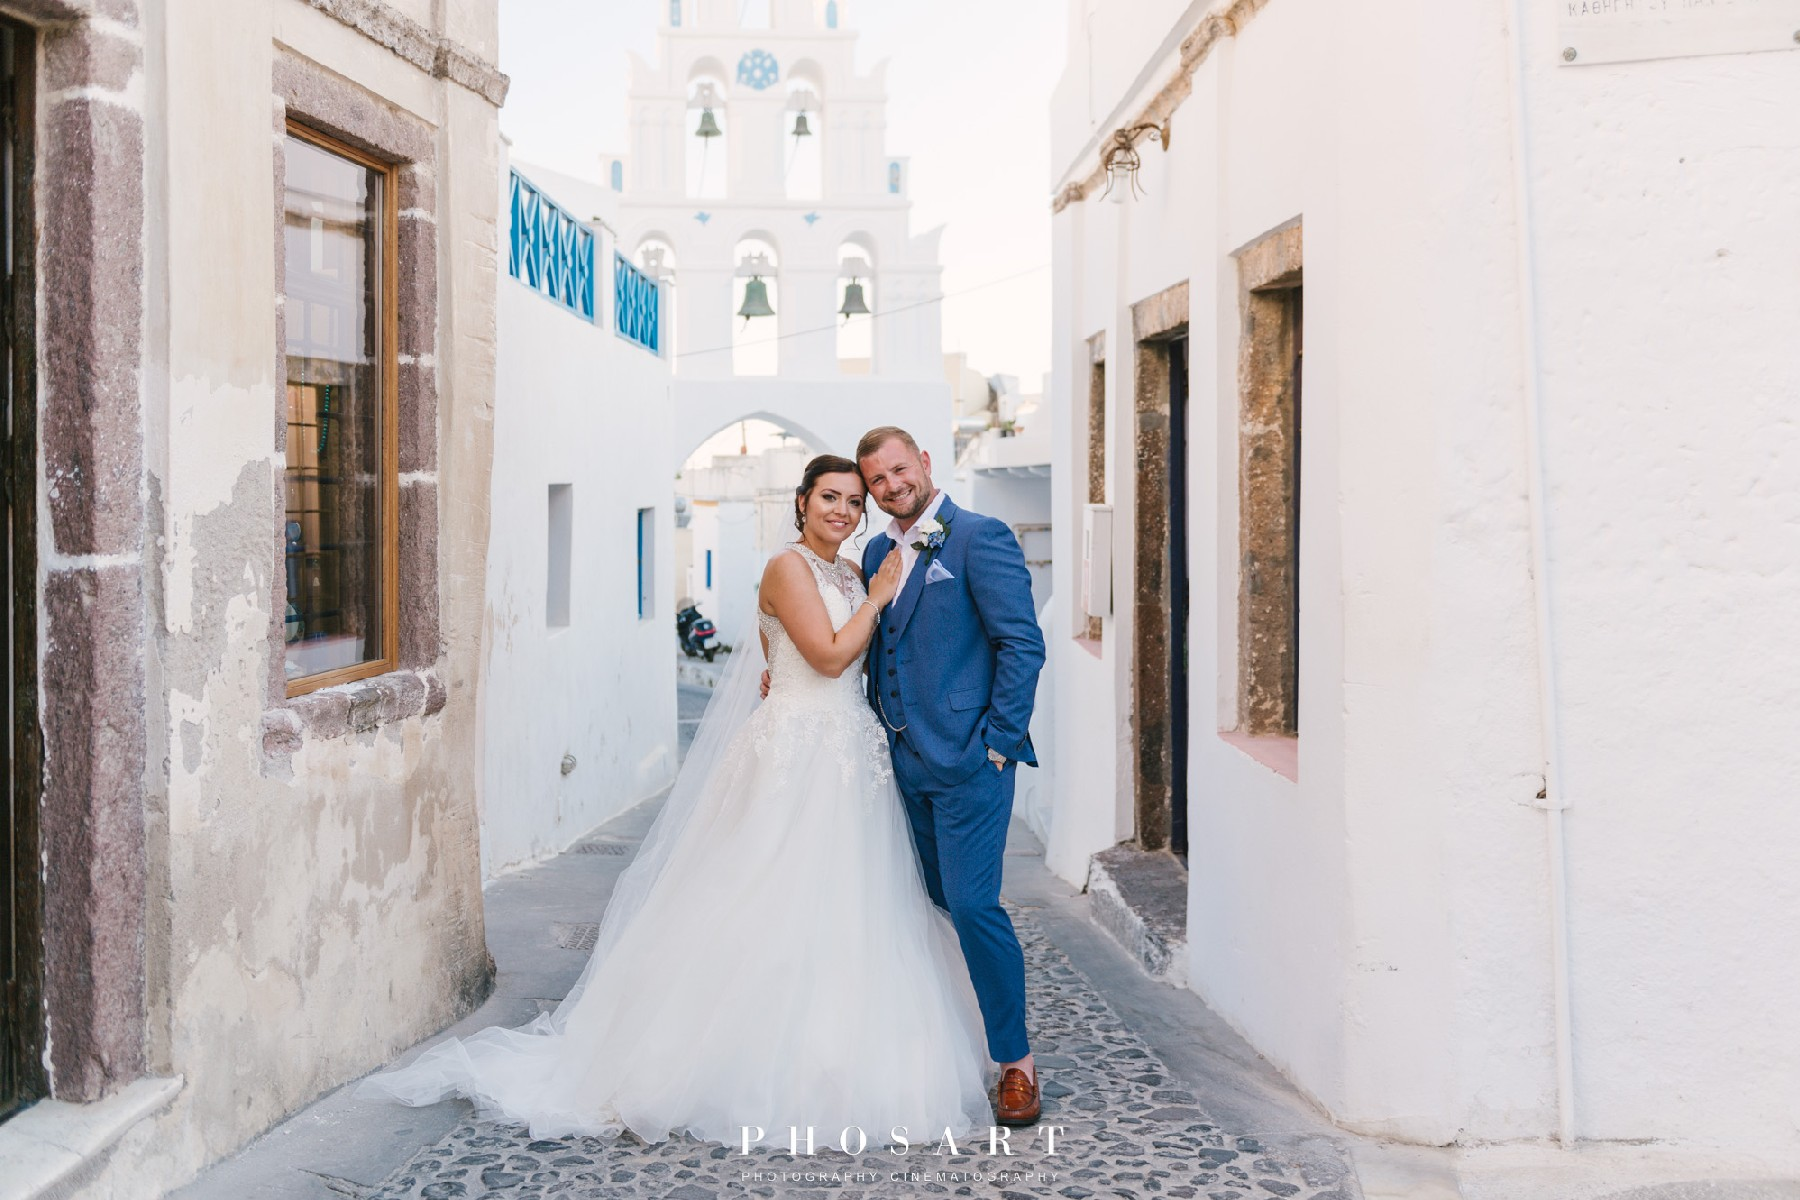 Wedding planner in Santorini